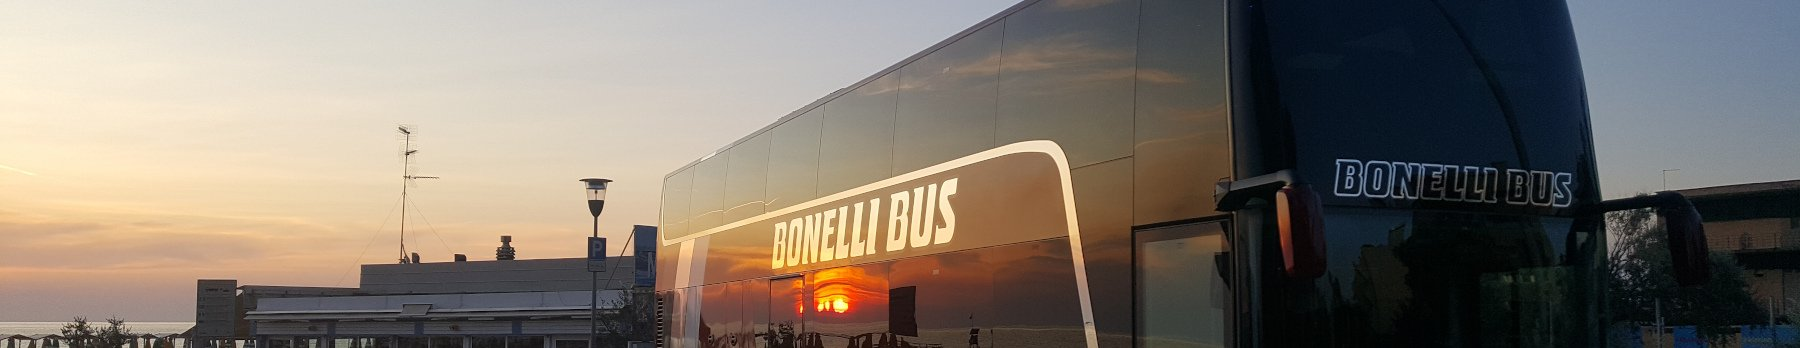 Vehicles for hire - Bonelli Bus